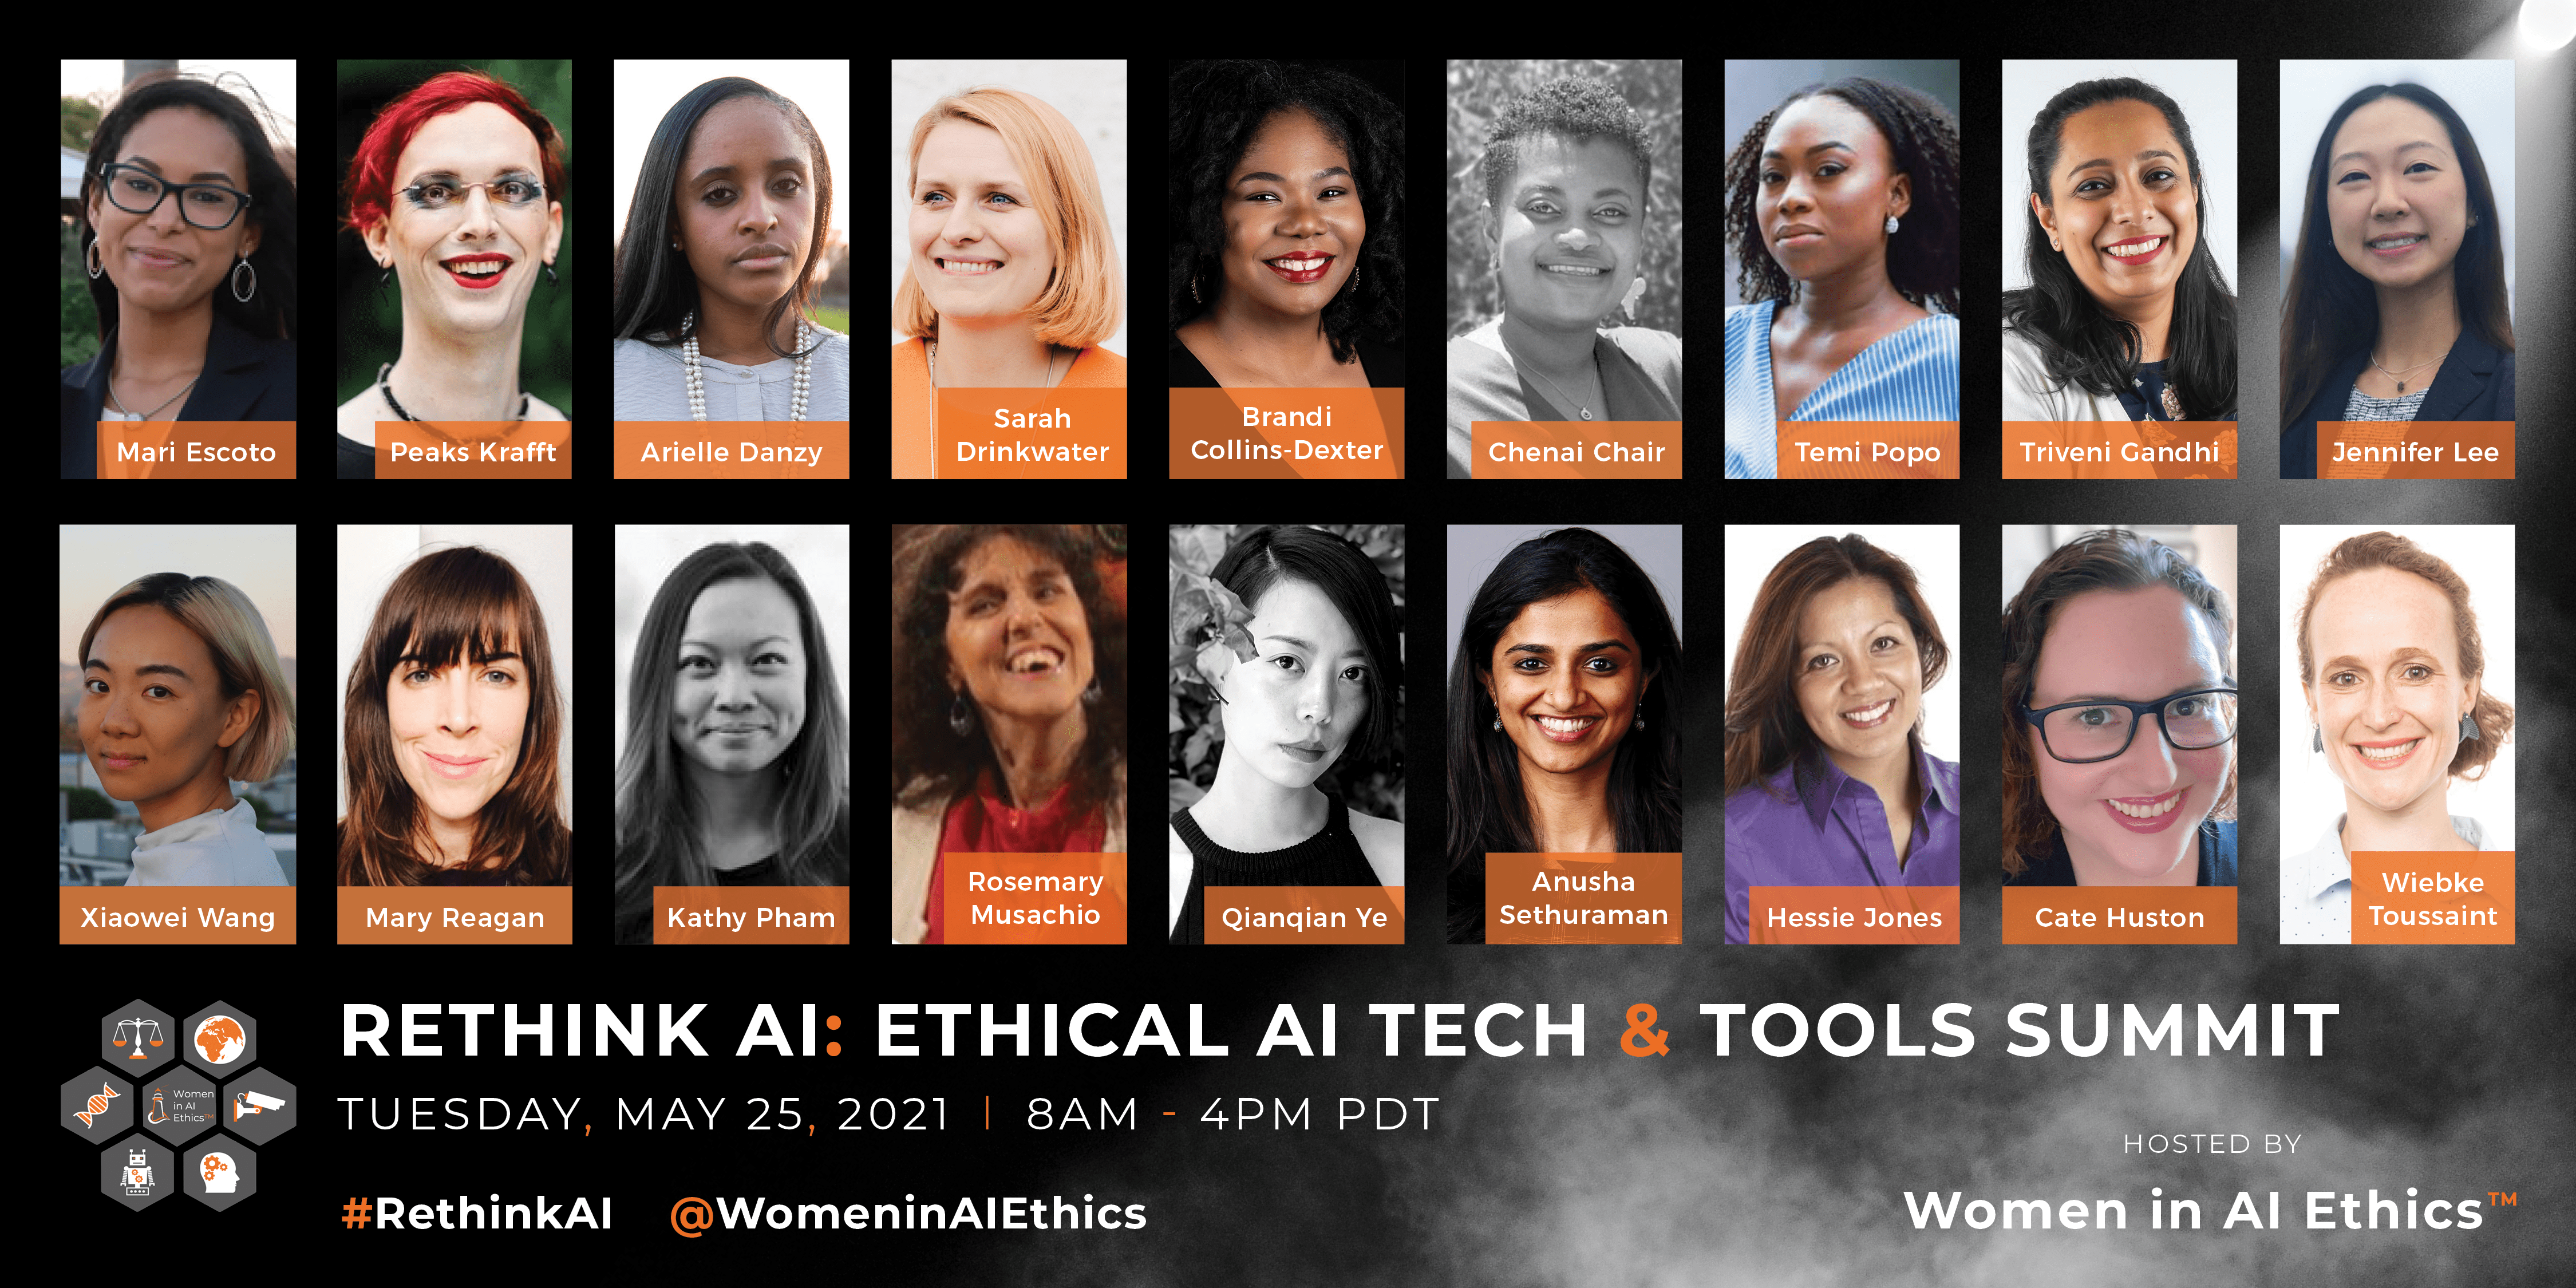 Women in AI Ethics Event Poster